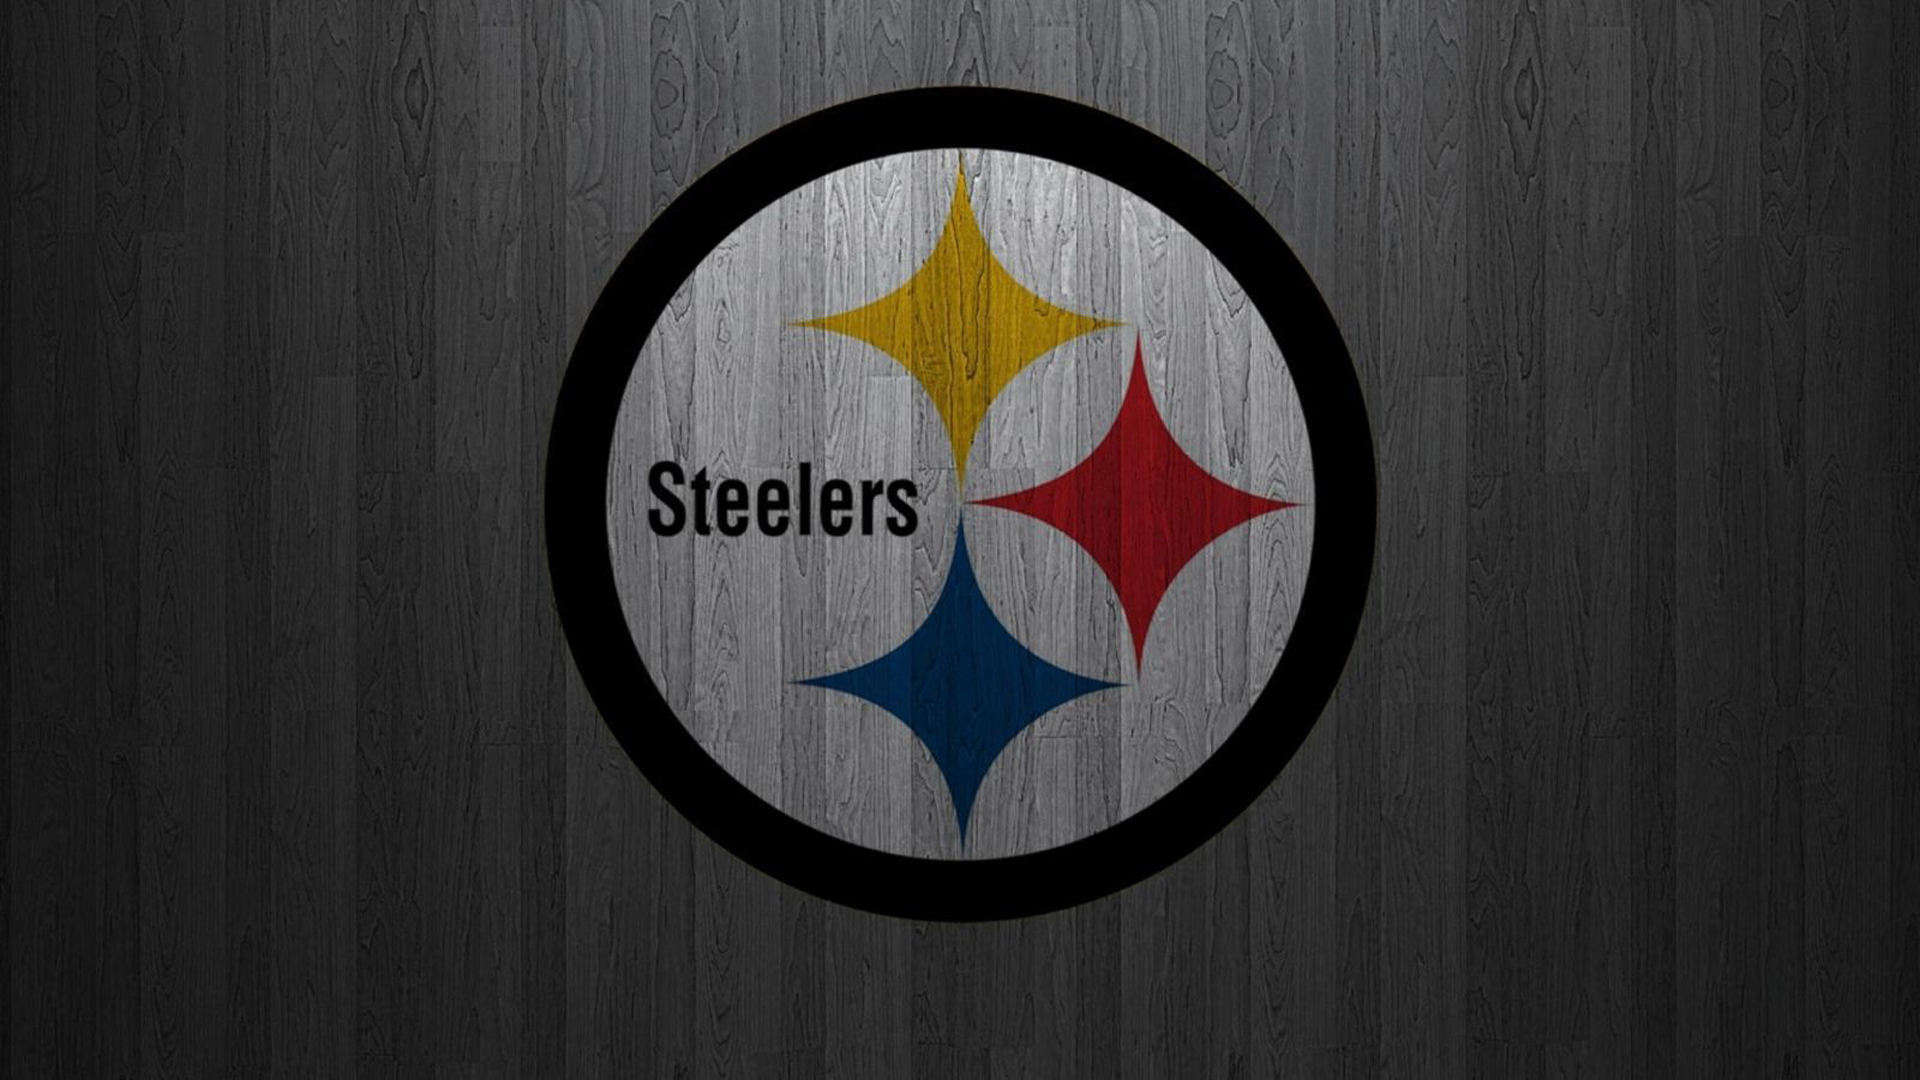 Download Pittsburgh Steelers On Black Circle With Gray Background Hd Steelers